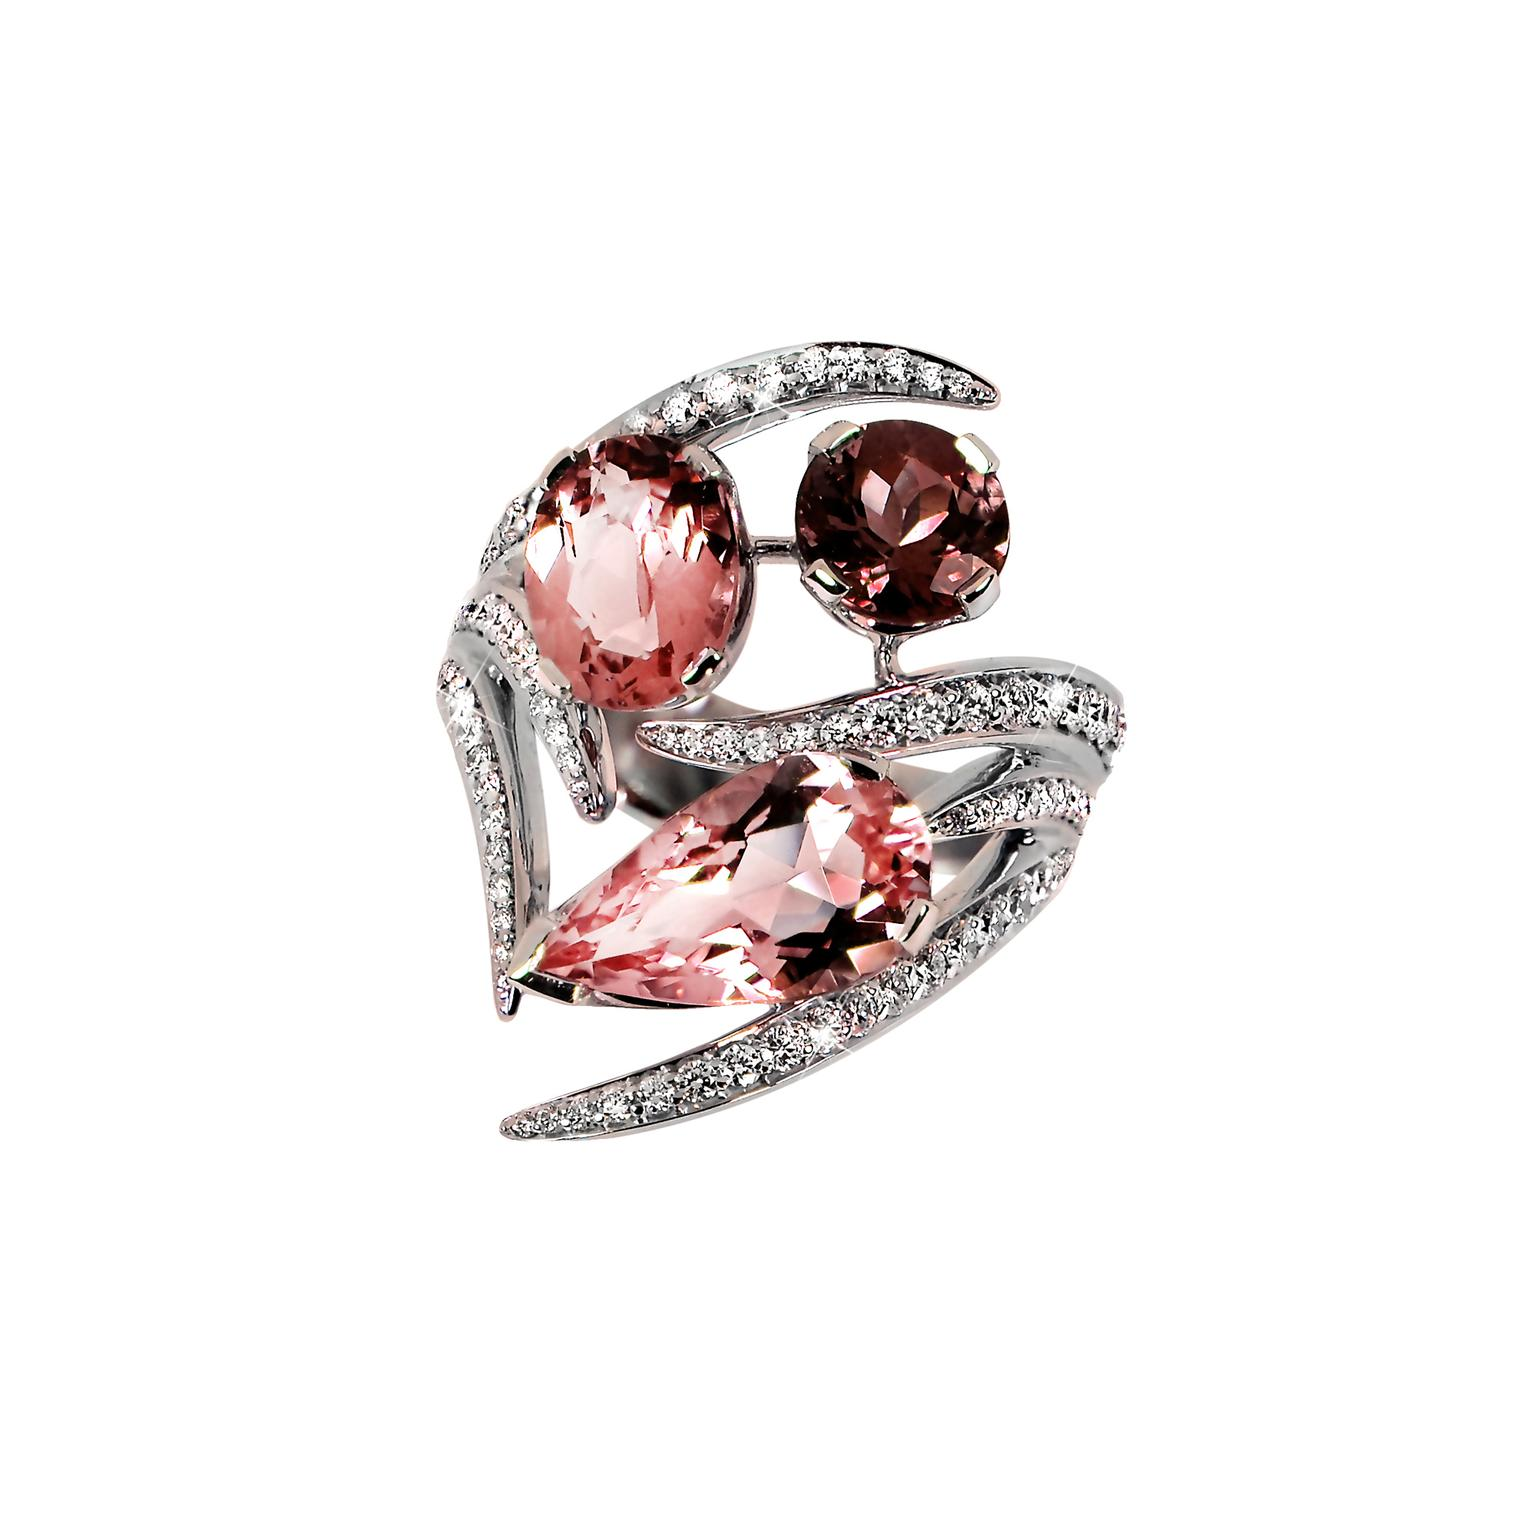 Shaun Leane morganite and pink tourmaline Aurora ring